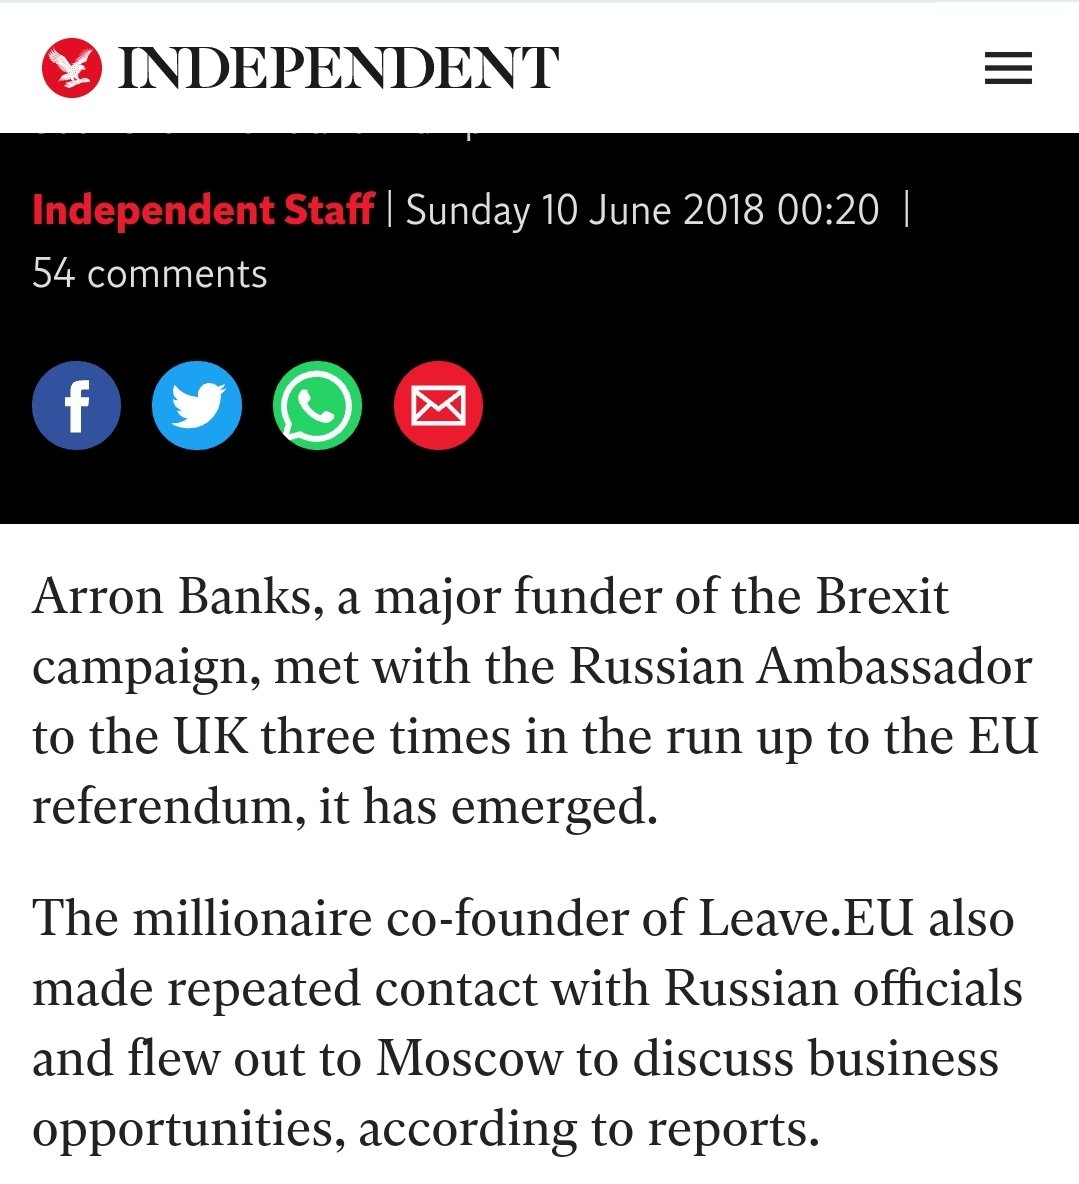 Arron Banks met Ambassador Yakovenko at least three times in the run-up to the referendum. He didnt just serve Putins interests in funding UKIP and Leave EU. Hes been only too happy to spout pro-Kremlin propaganda.